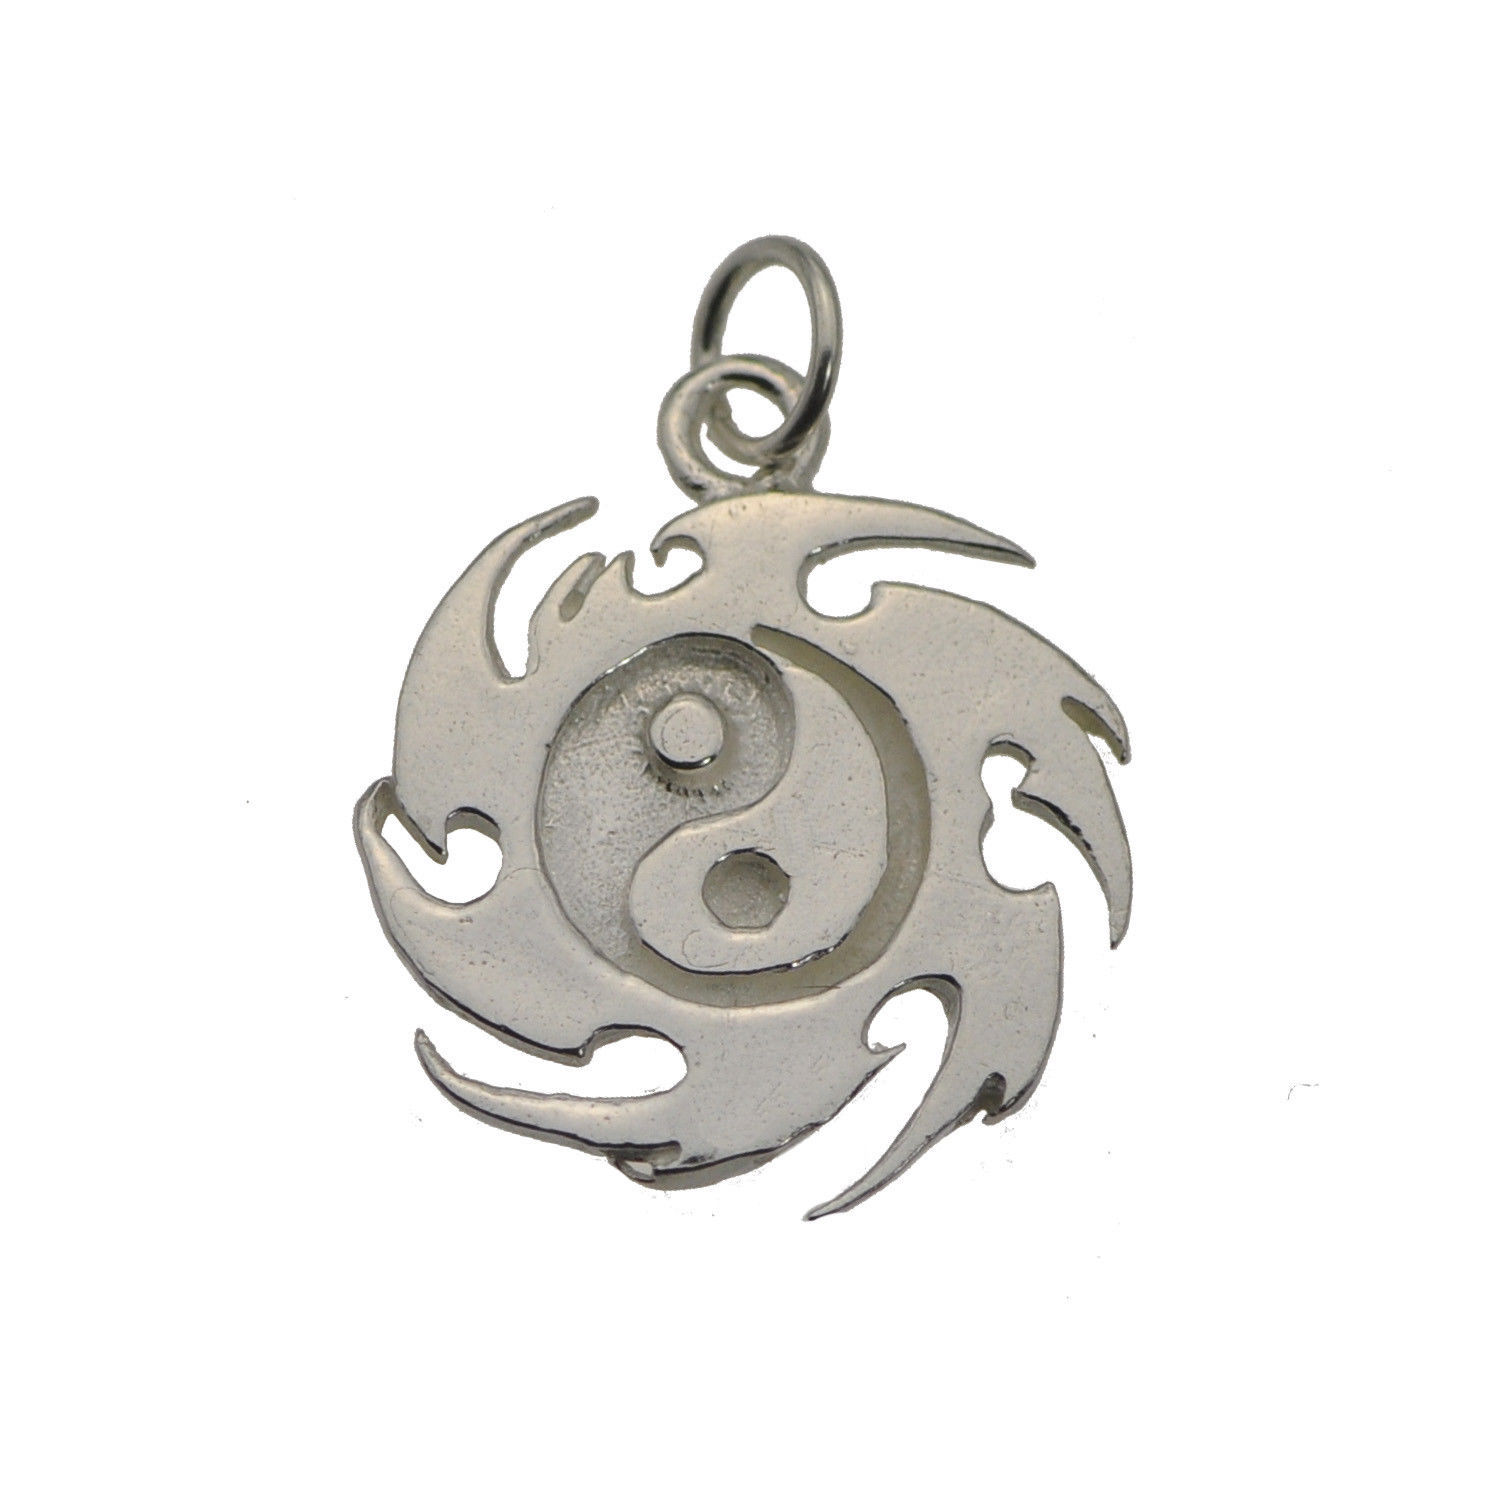 Yin Yang Fire Master Element Real Solid Sterling Silver 925 Jewelry New Charm